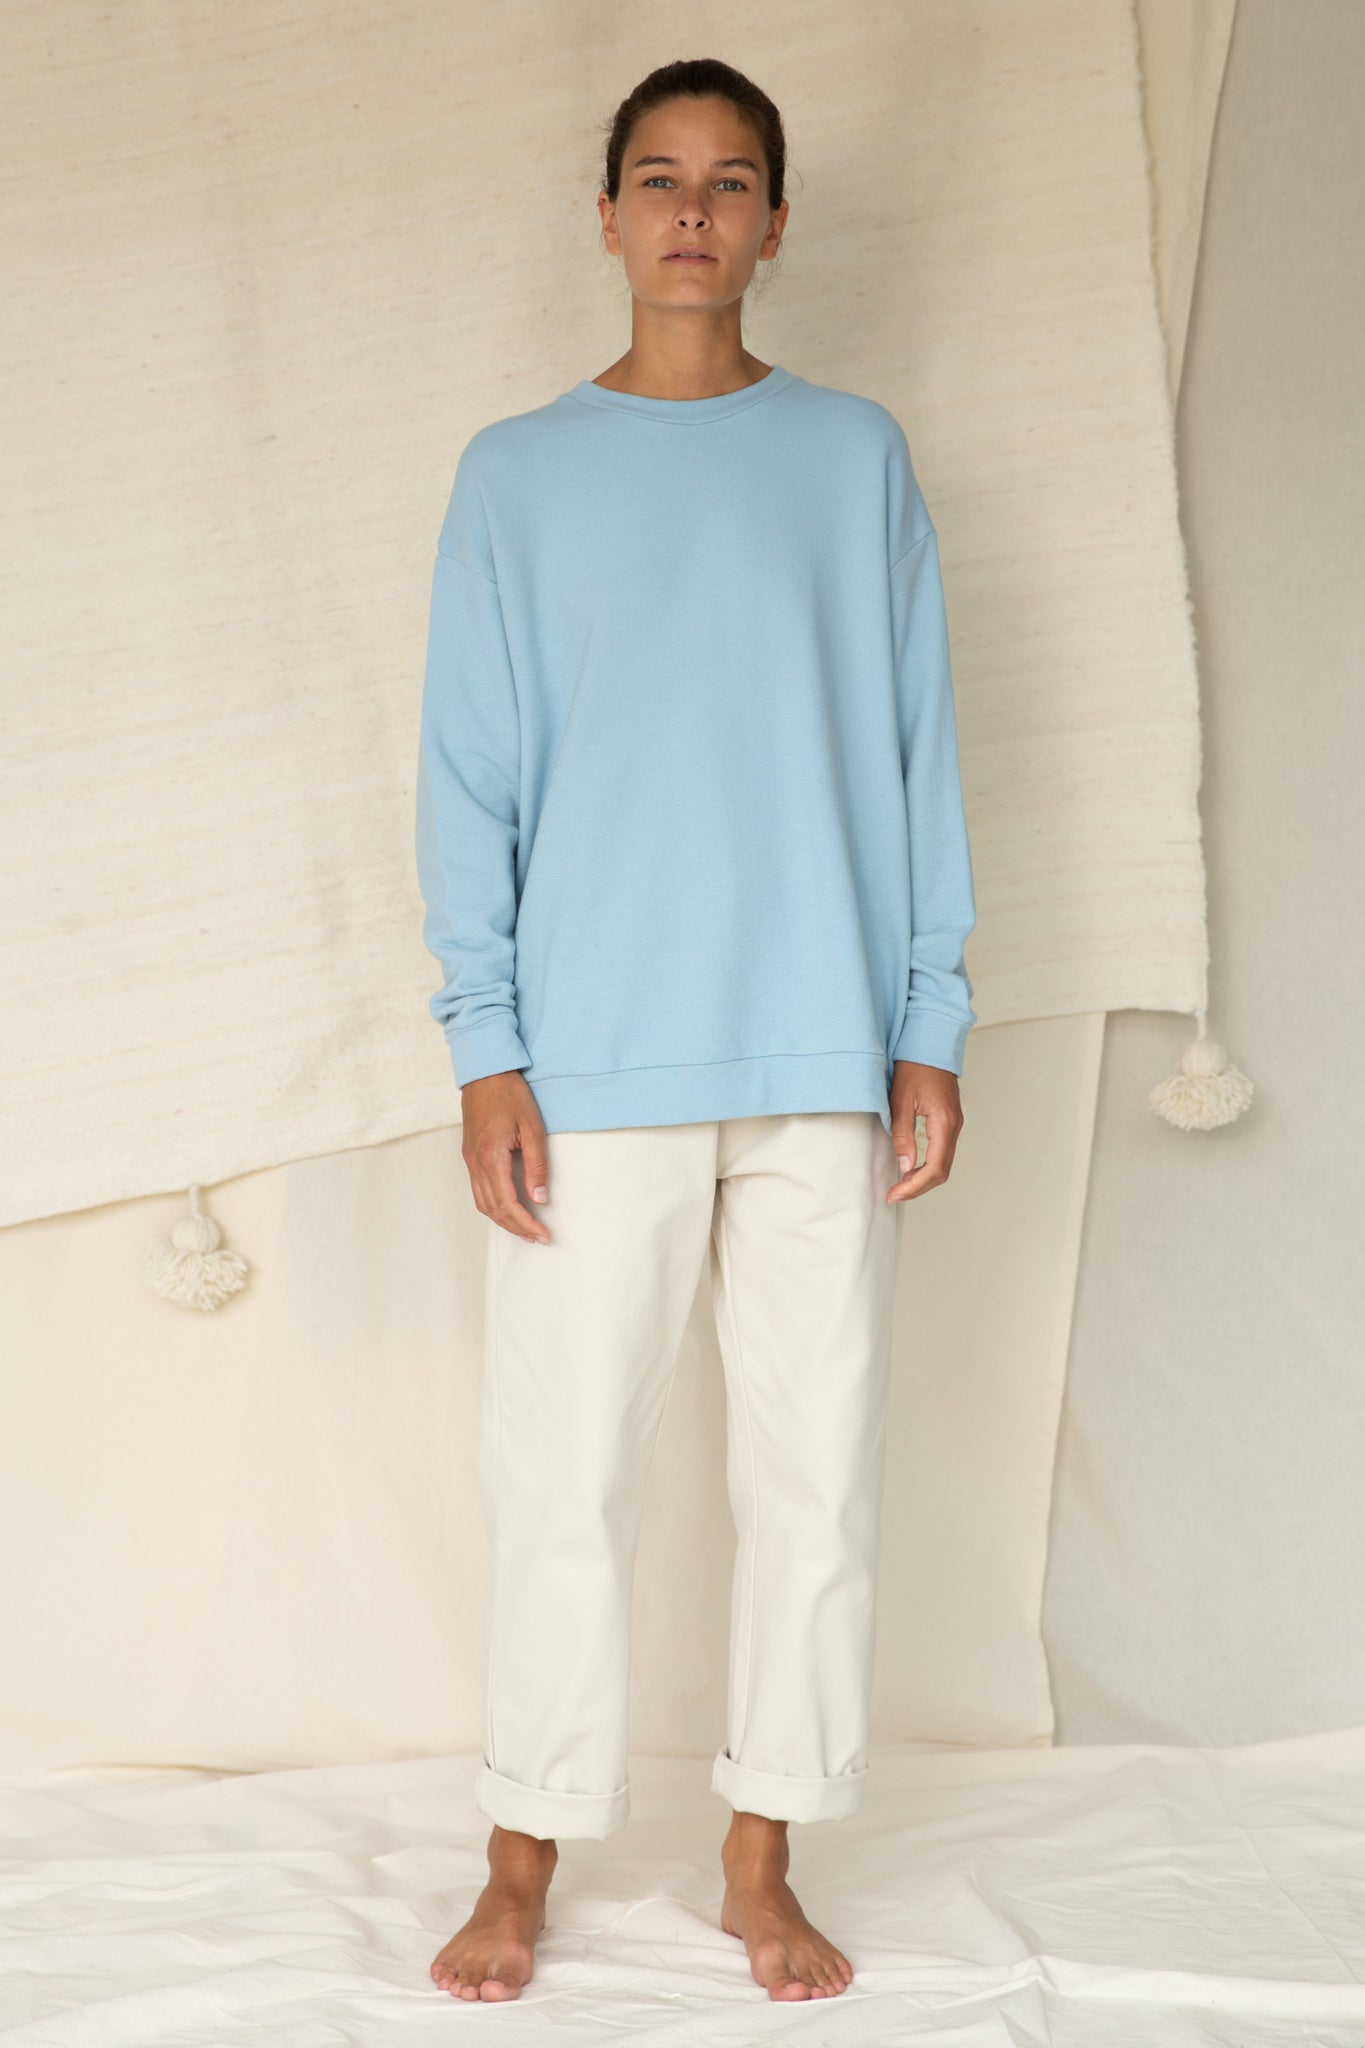 Classic Sweatshirt in Forget me not